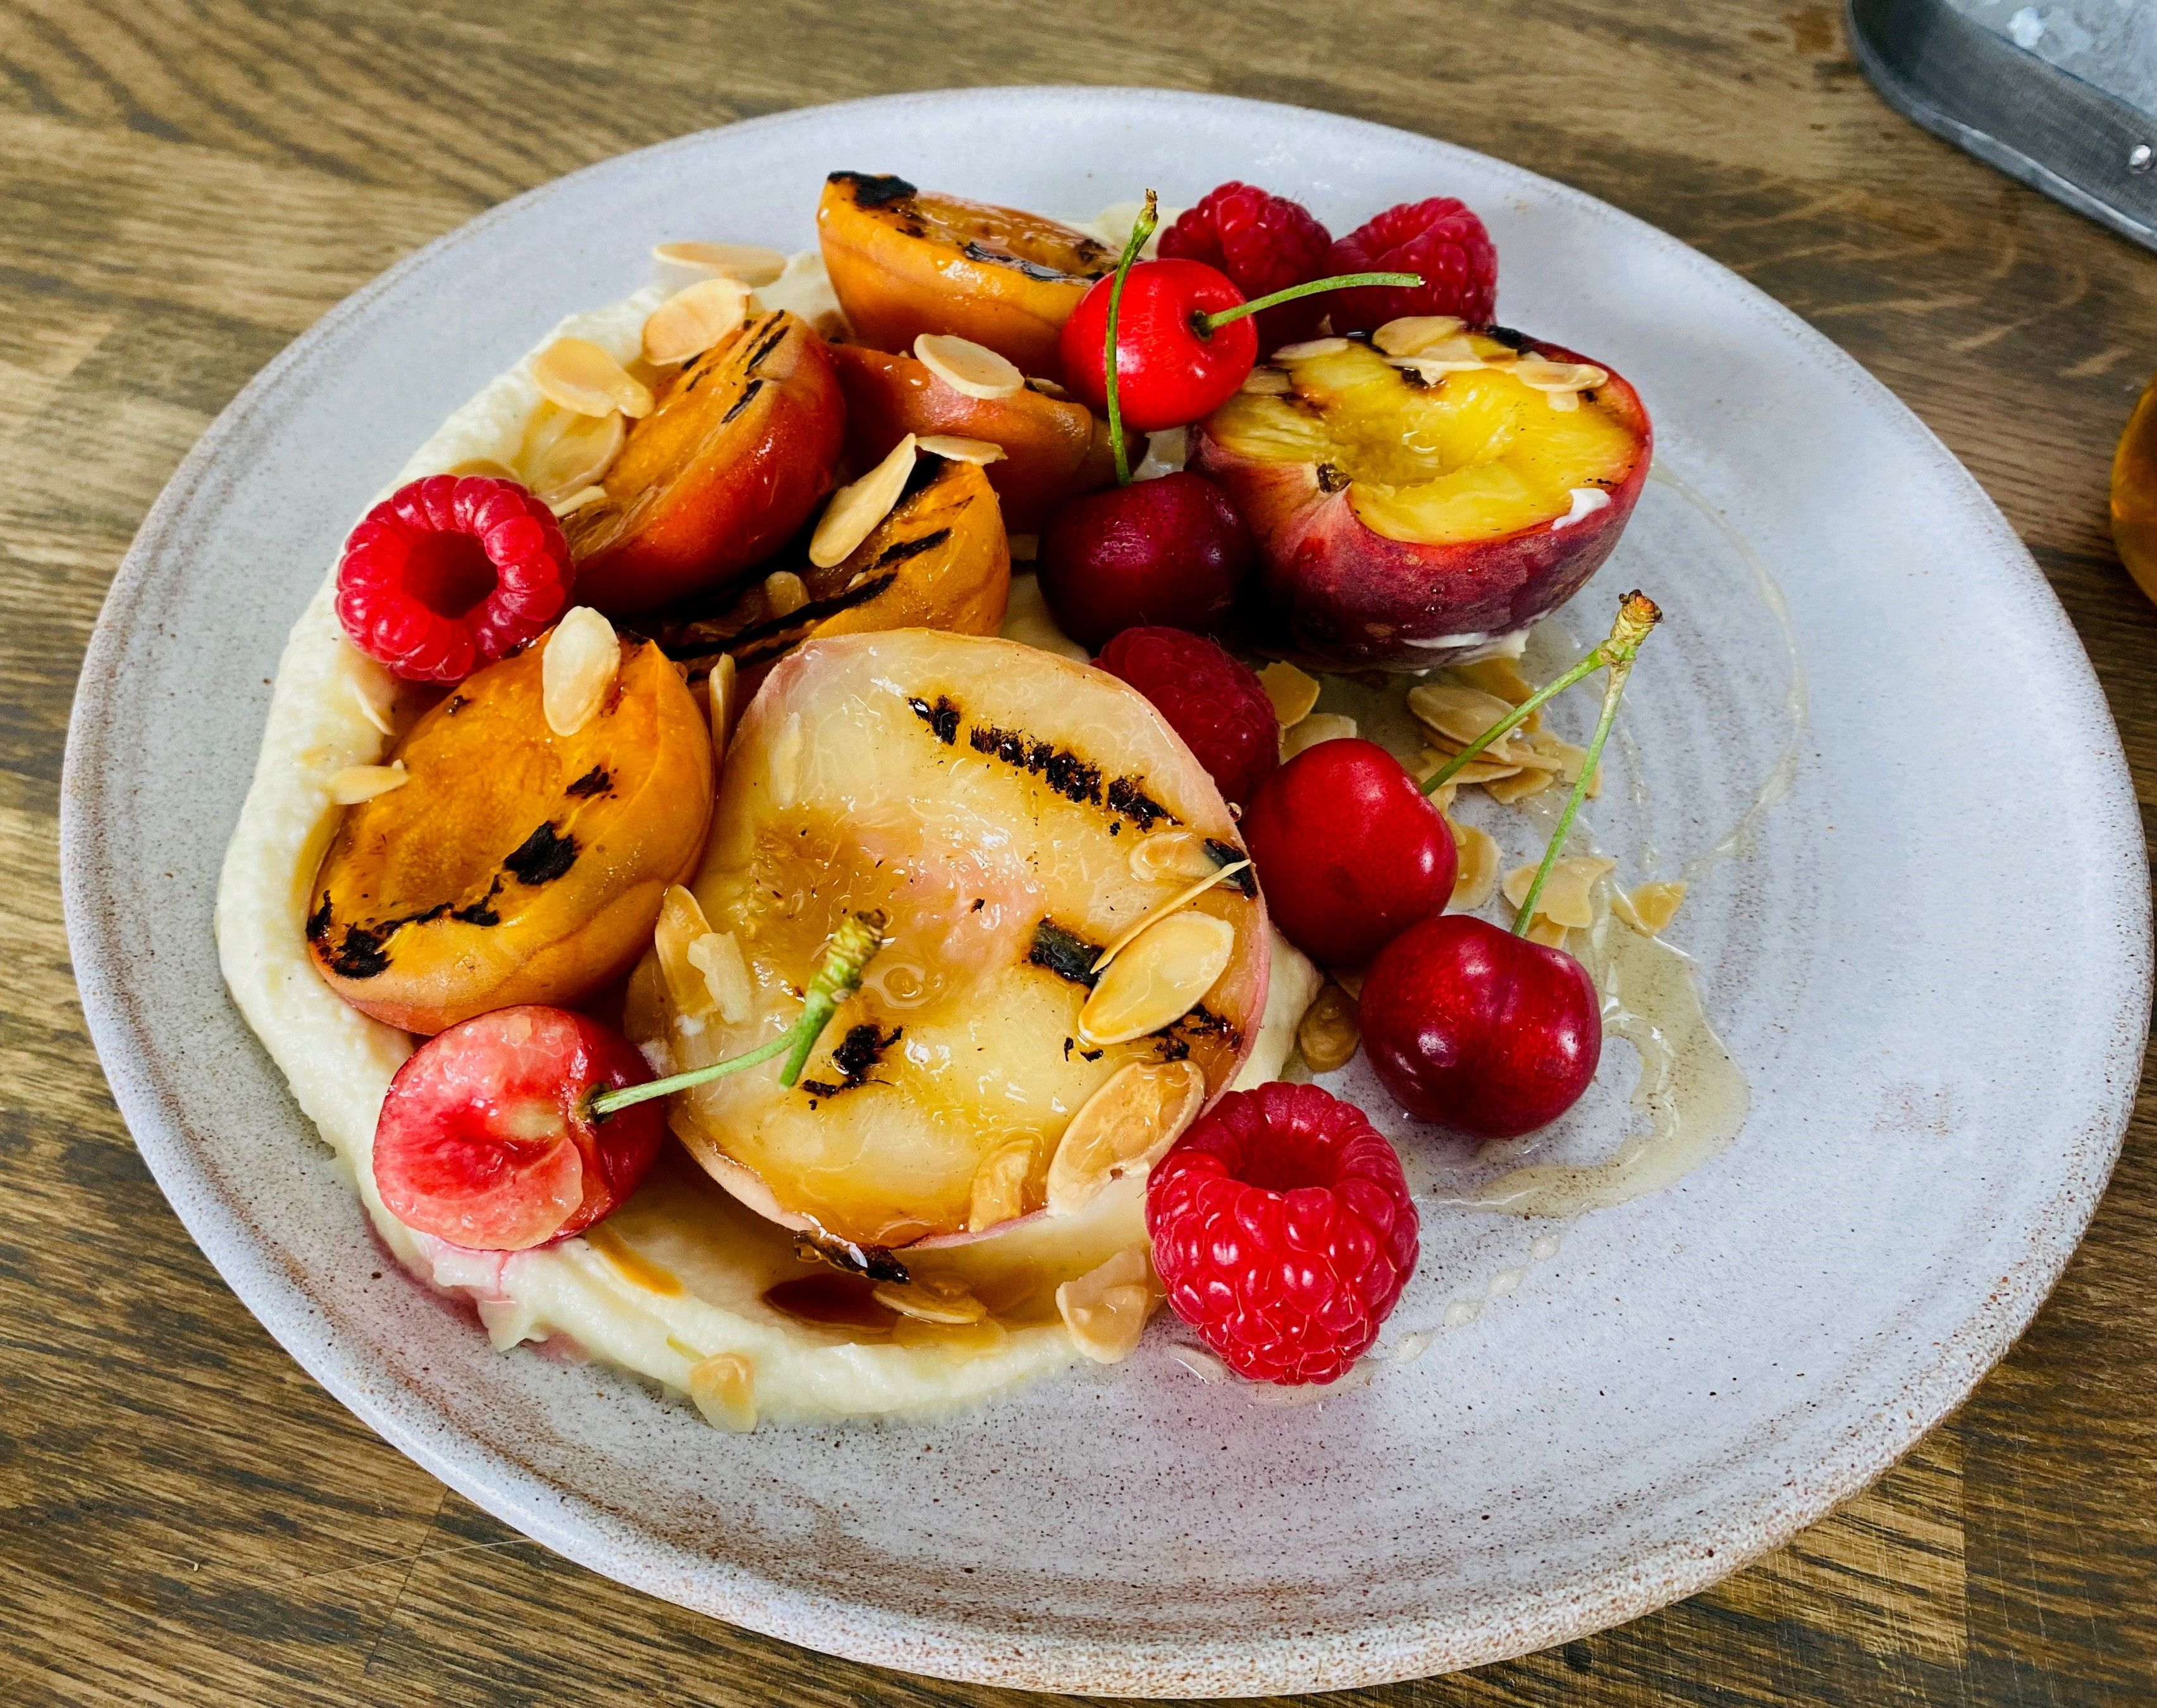 Donal's griddled stone fruits with mascarpone.